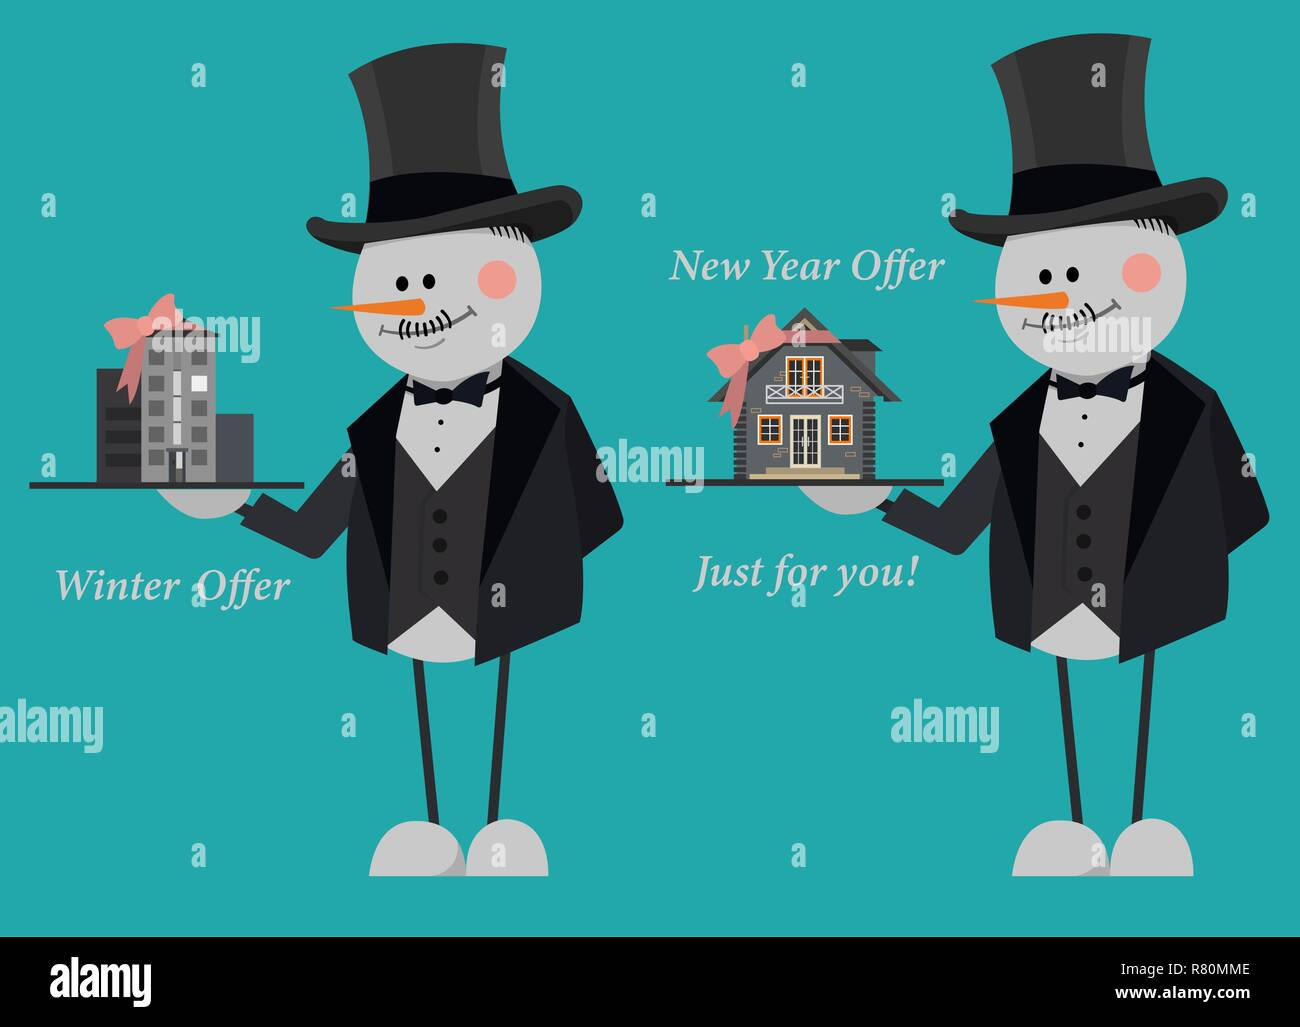 Snowmen in suits and top hats offering a new flat and country house just for you. New Year Offer. Stock Vector